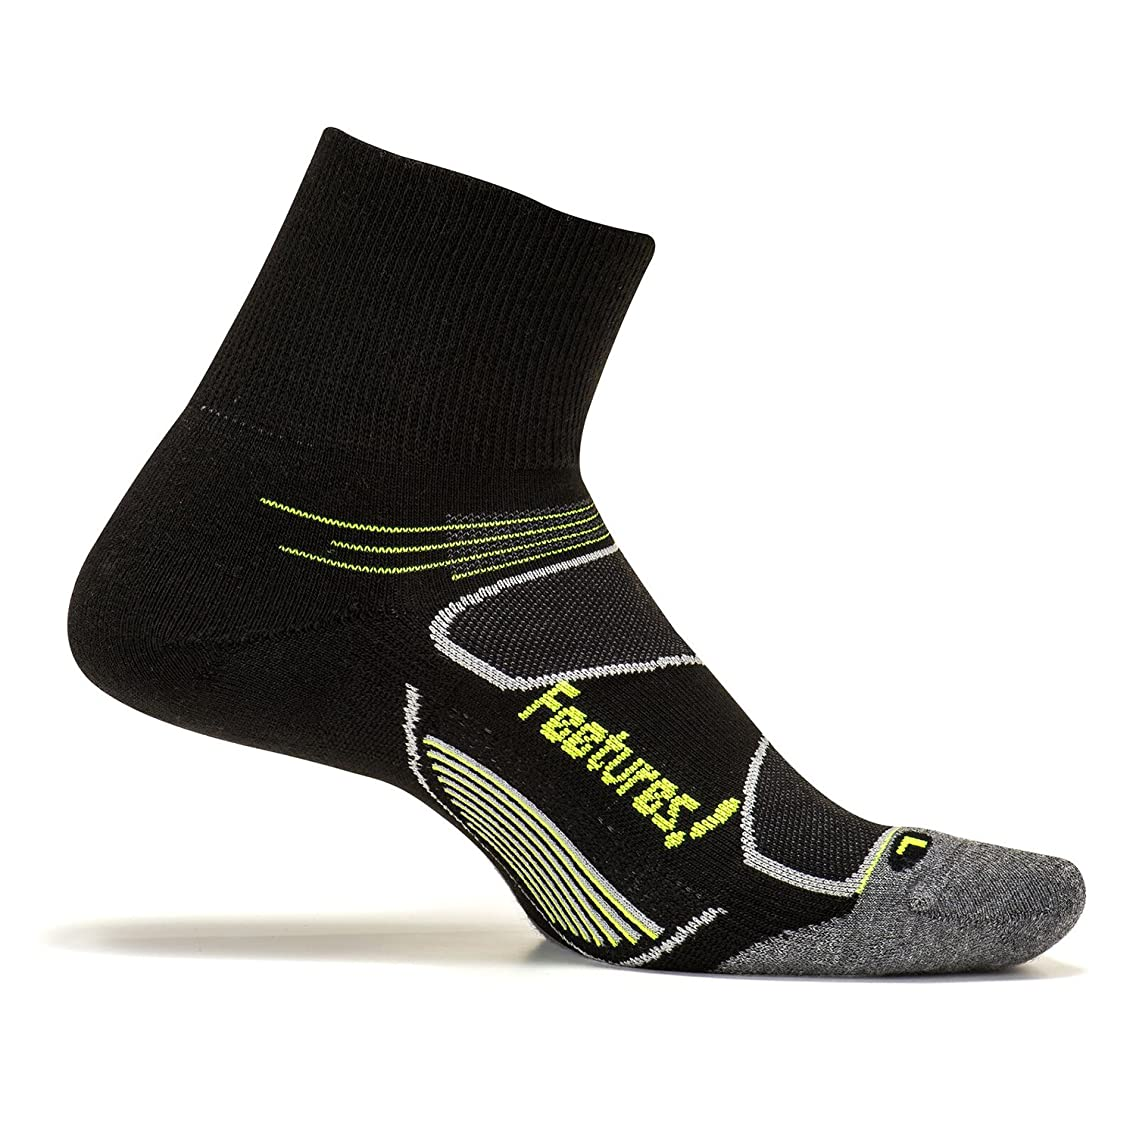 Feetures Men's Elite Max Cushion Quarter